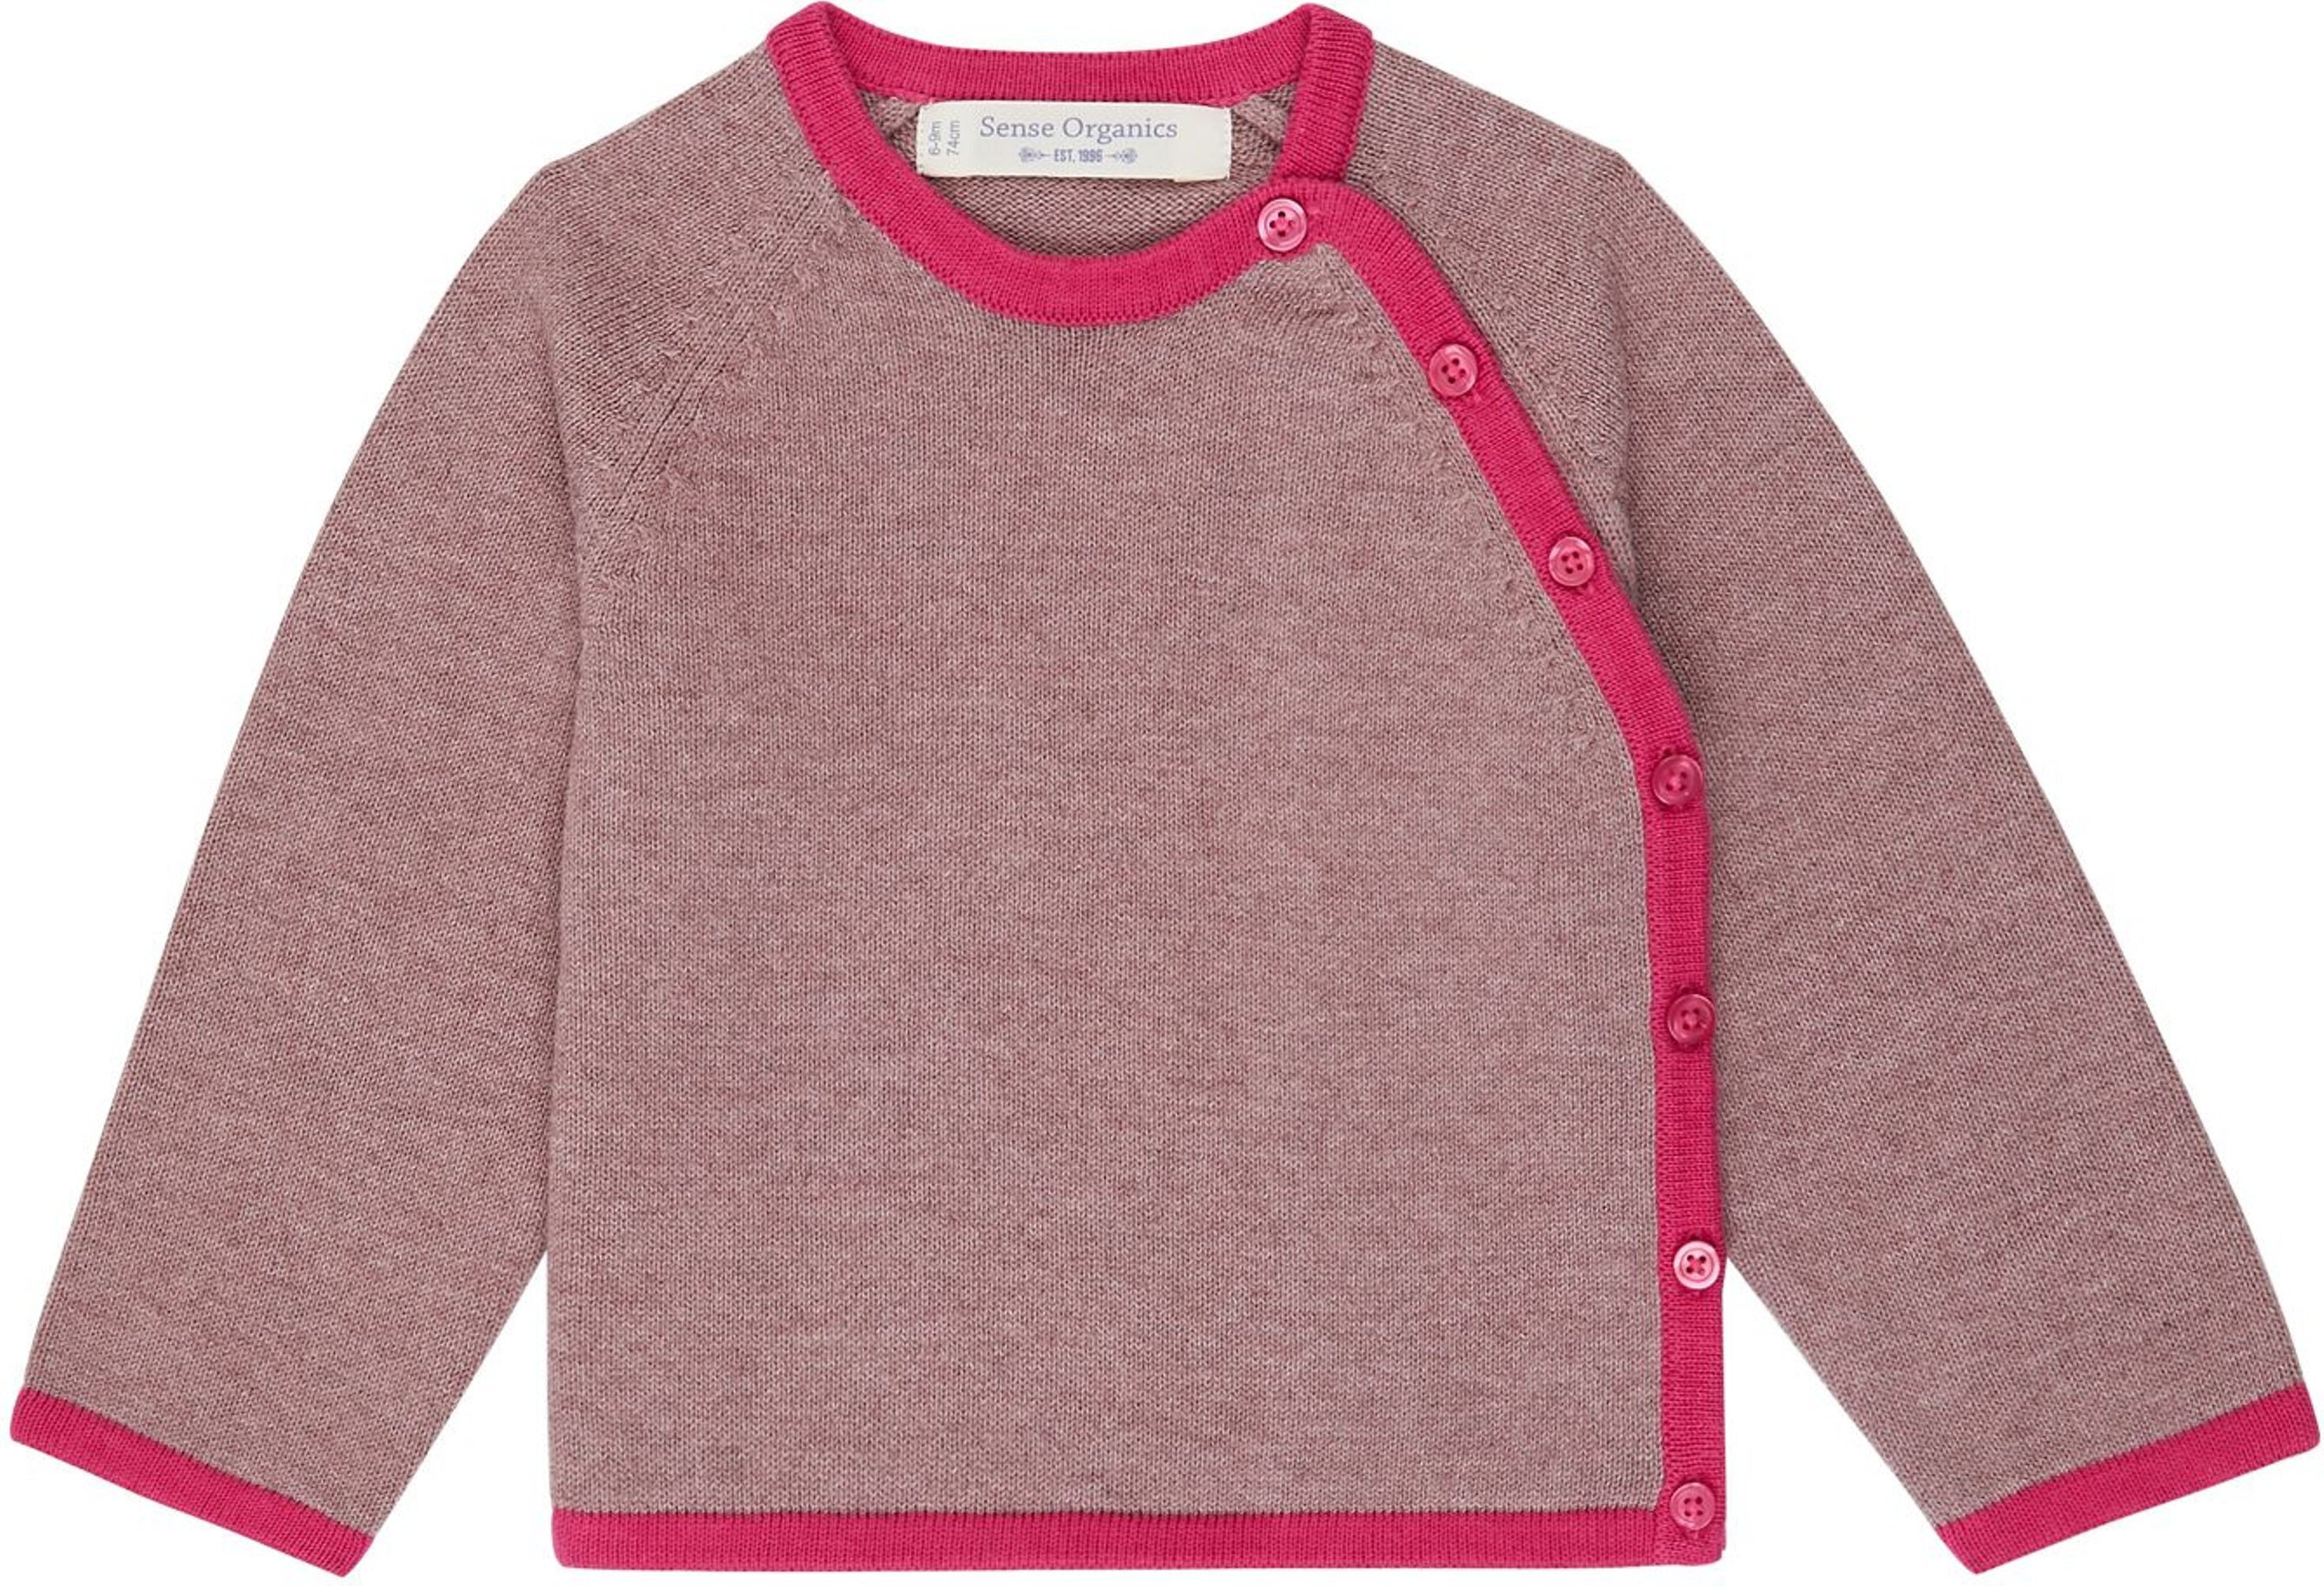 Sense Organic P. PICASSO Baby Knitted Wrap Jacket pink